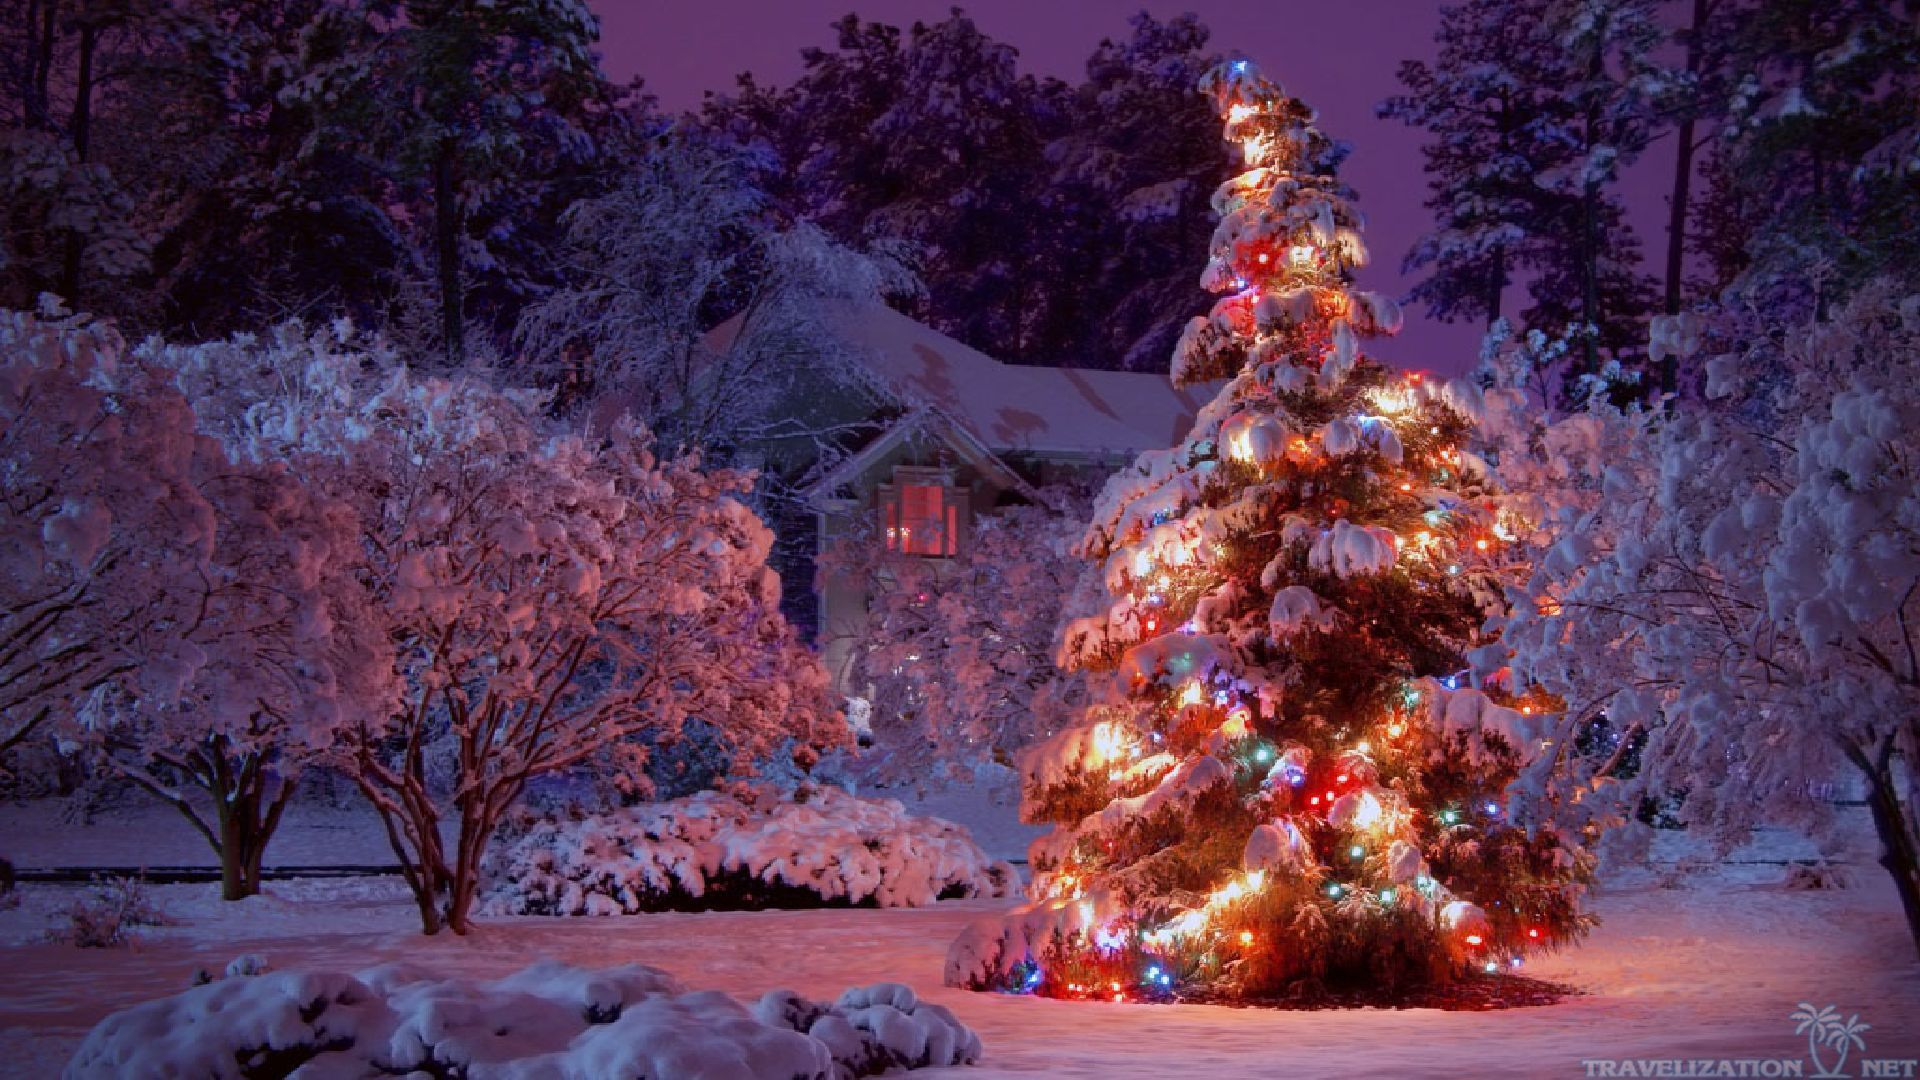 Download 1920x1080 HD Christmas Wallpaper Gallery